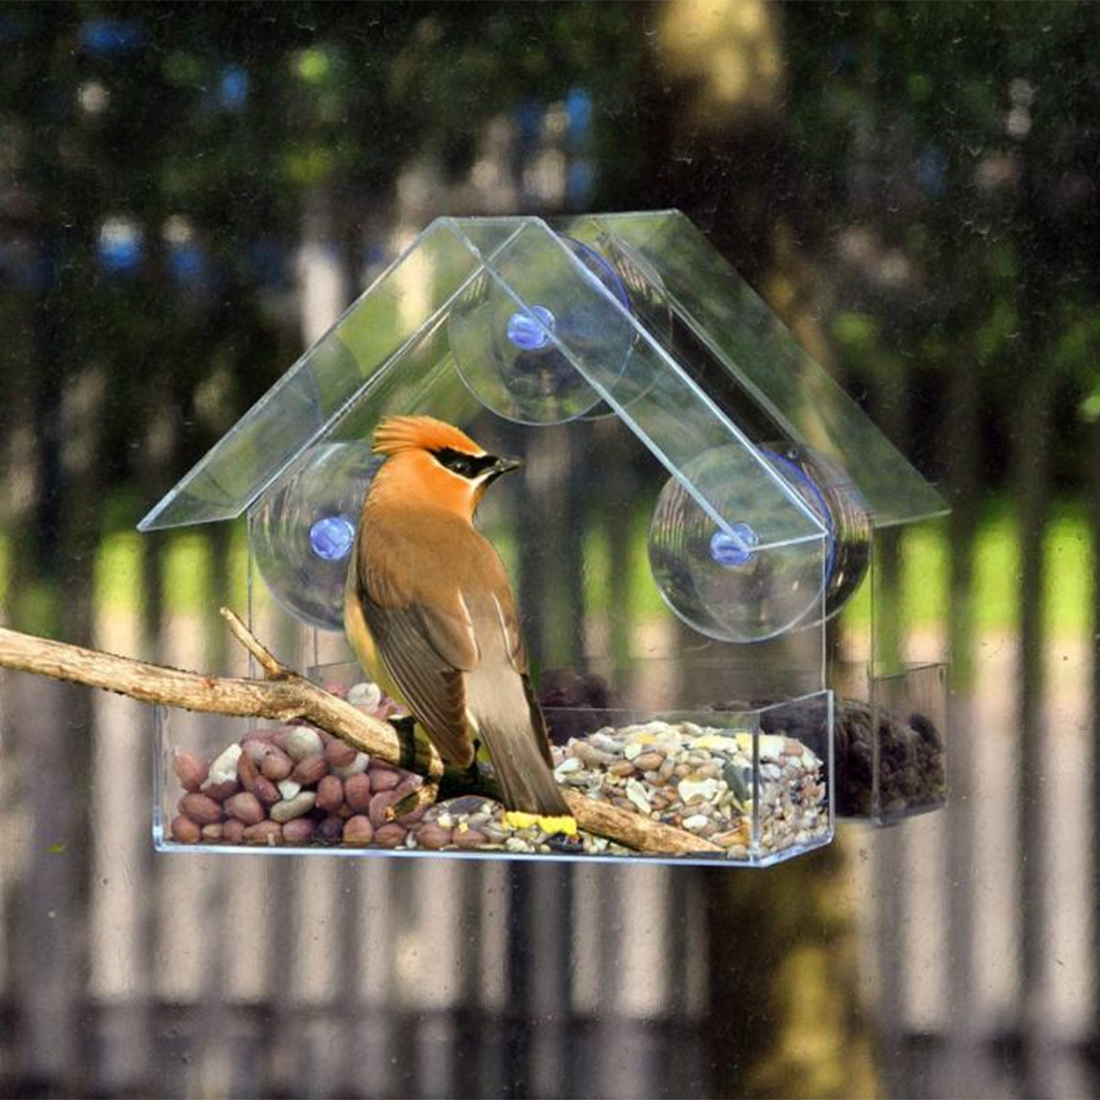 Petforu Plastic House-shaped Outer Bird Feeder Convenient Removable Feeder with Sucker - Transparent